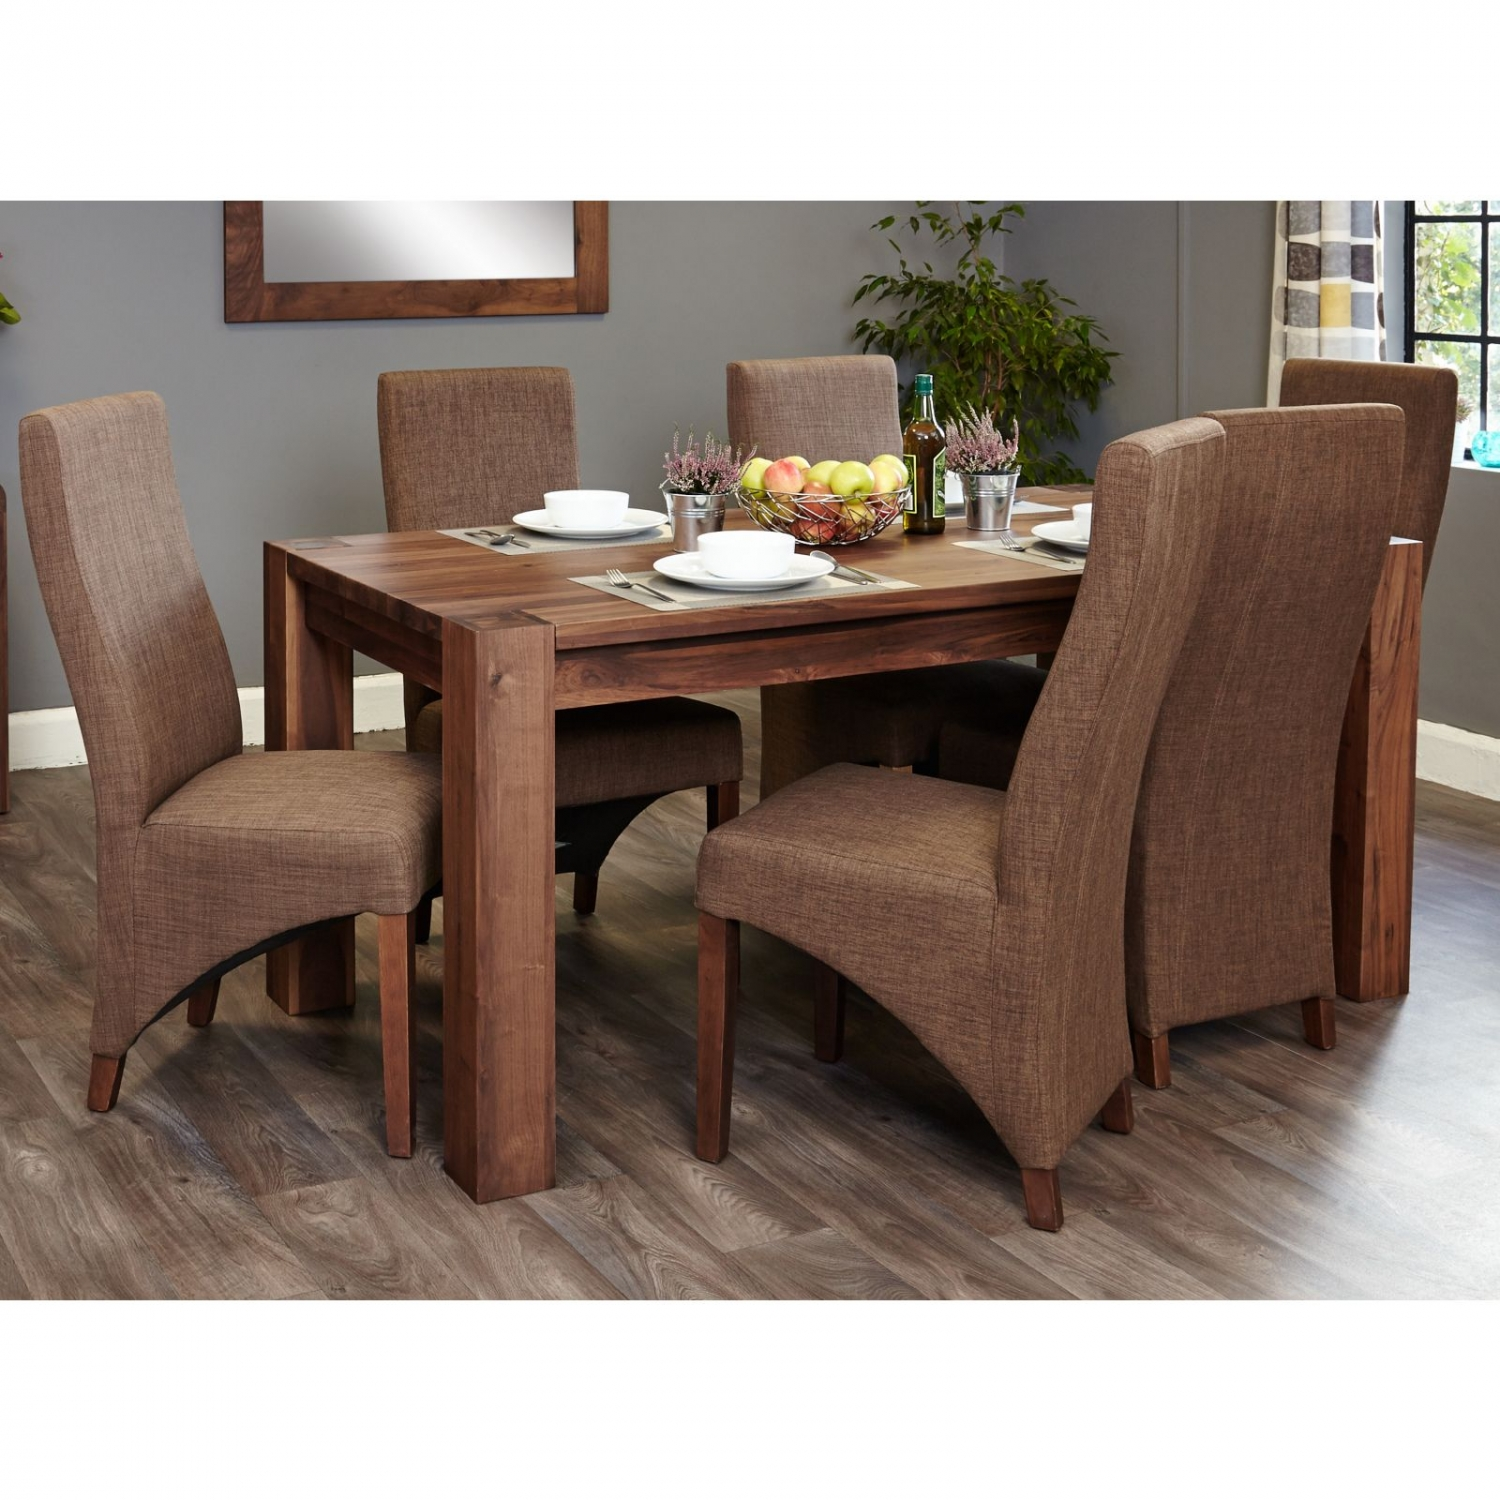 Strathmore Solid Walnut Furniture Large Dining Table And Six Hazelnut Chairs Set Ebay